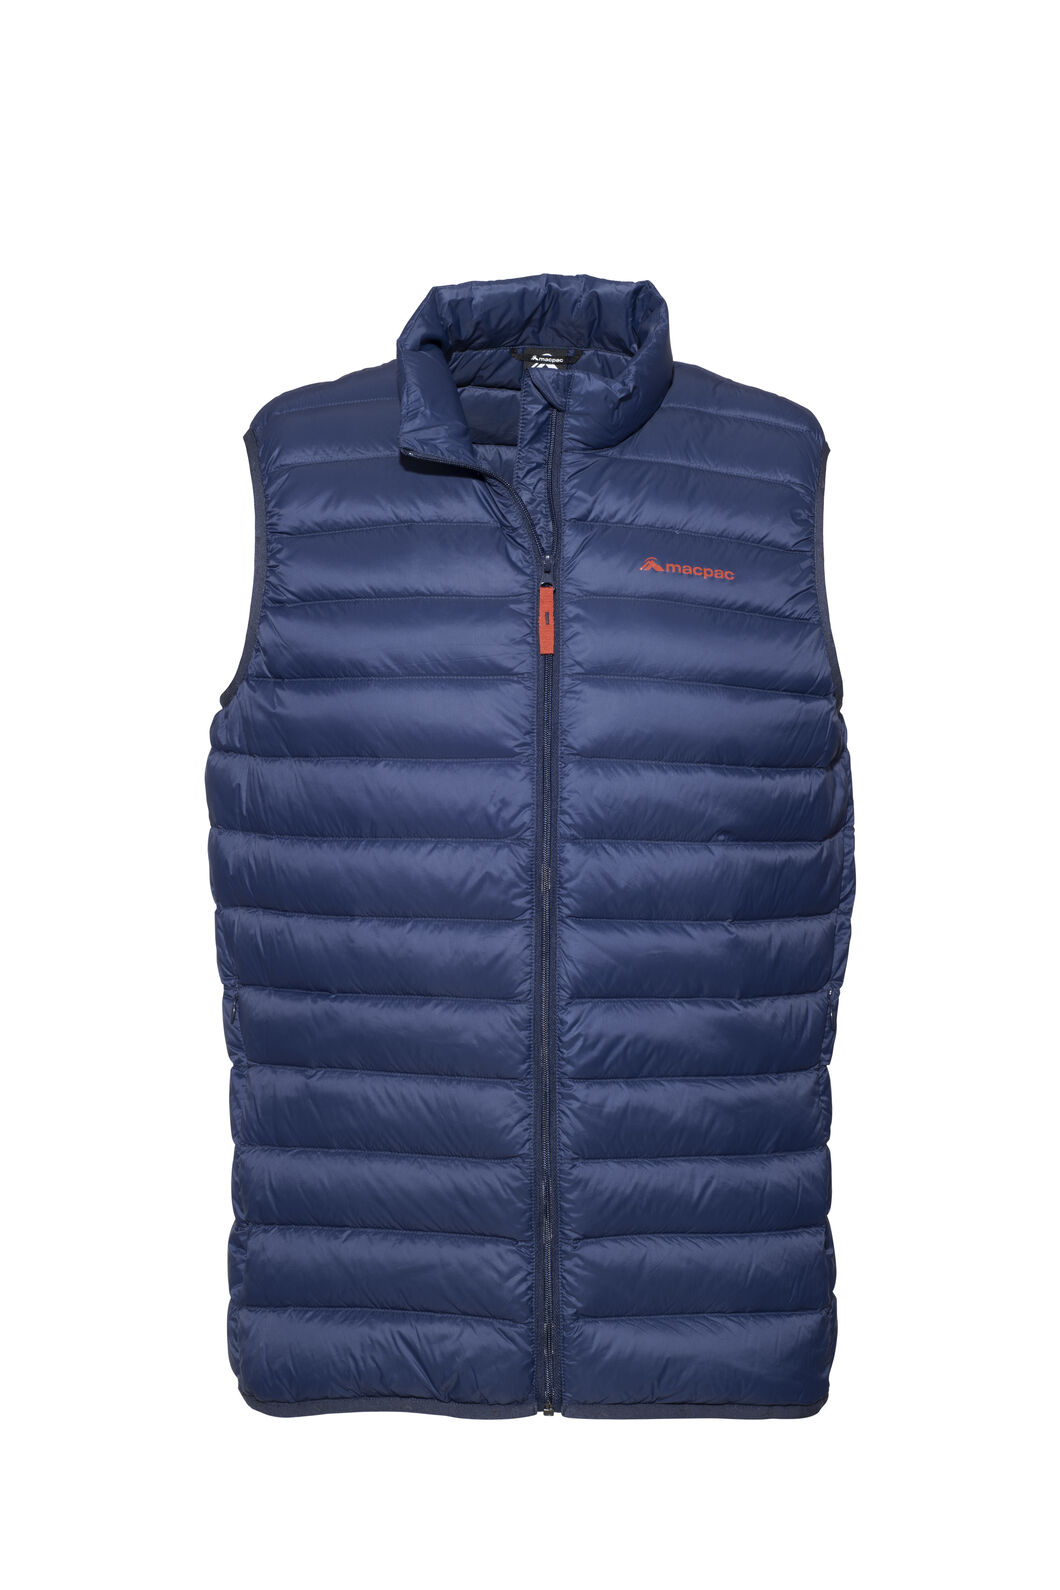 Macpac Uber Light Down Vest - Men's, Black Iris/Rooibos Tea, hi-res